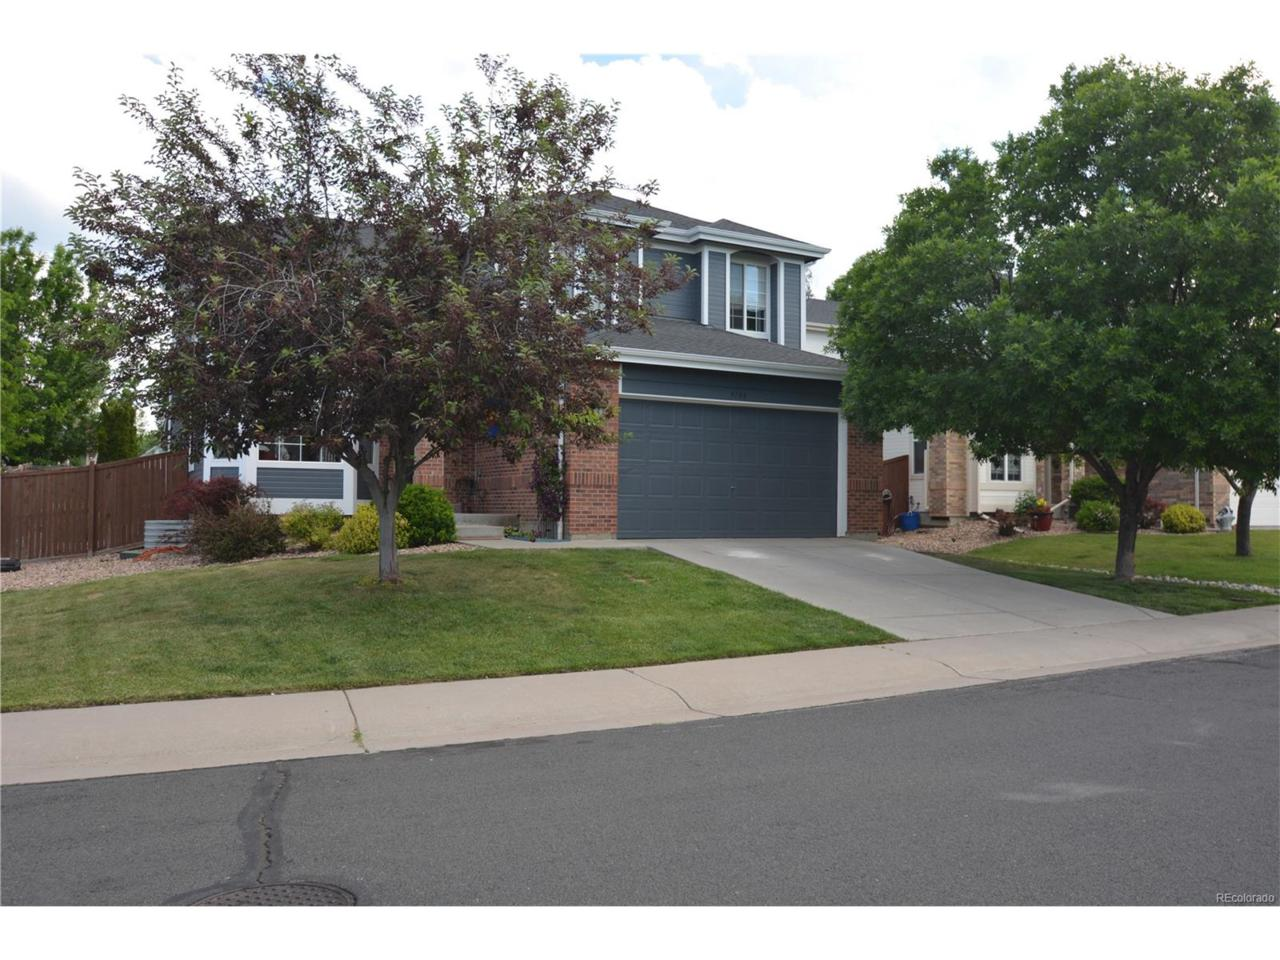 9708 W 107th Drive, Westminster, CO 80021 (MLS #2267671) :: 8z Real Estate